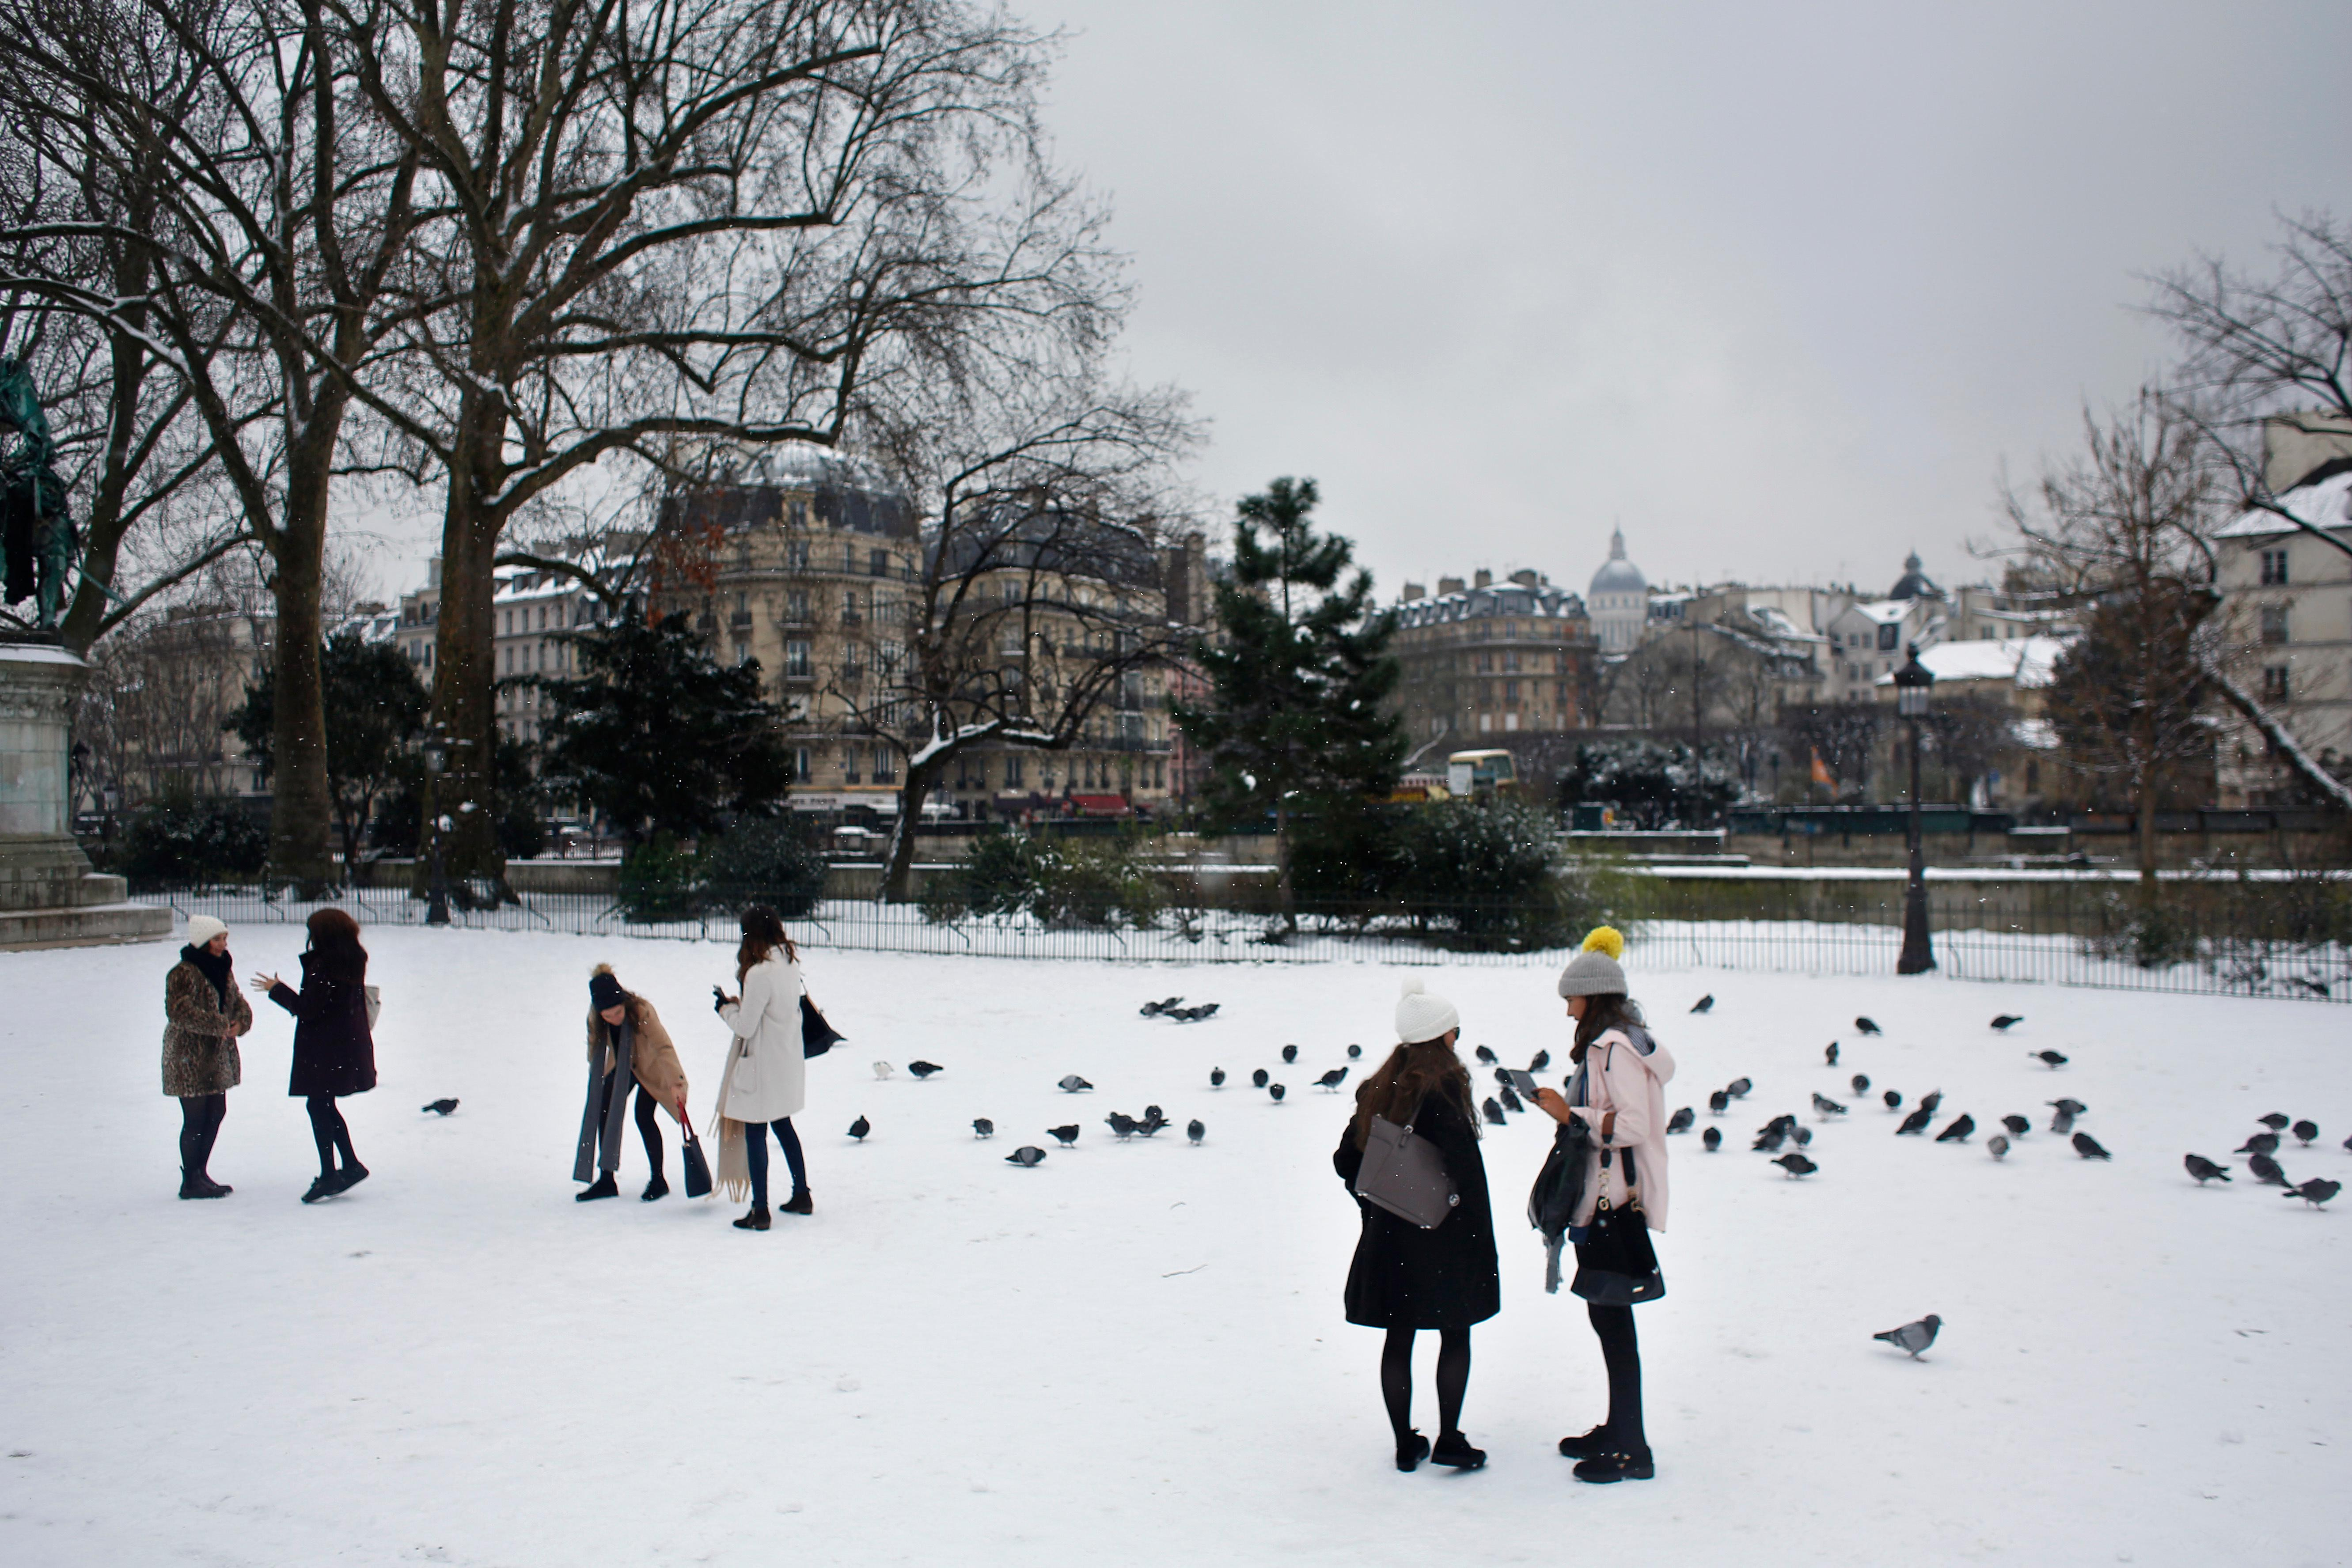 People stroll on the snow covered square in front of Notre Dame cathedral, in Paris, Friday, Feb. 9, 2018. Authorities are telling drivers in the Paris region to stay home as snow and freezing rain have hit a swath of France ill-prepared for the wintry weather. (AP Photo/Thibault Camus)